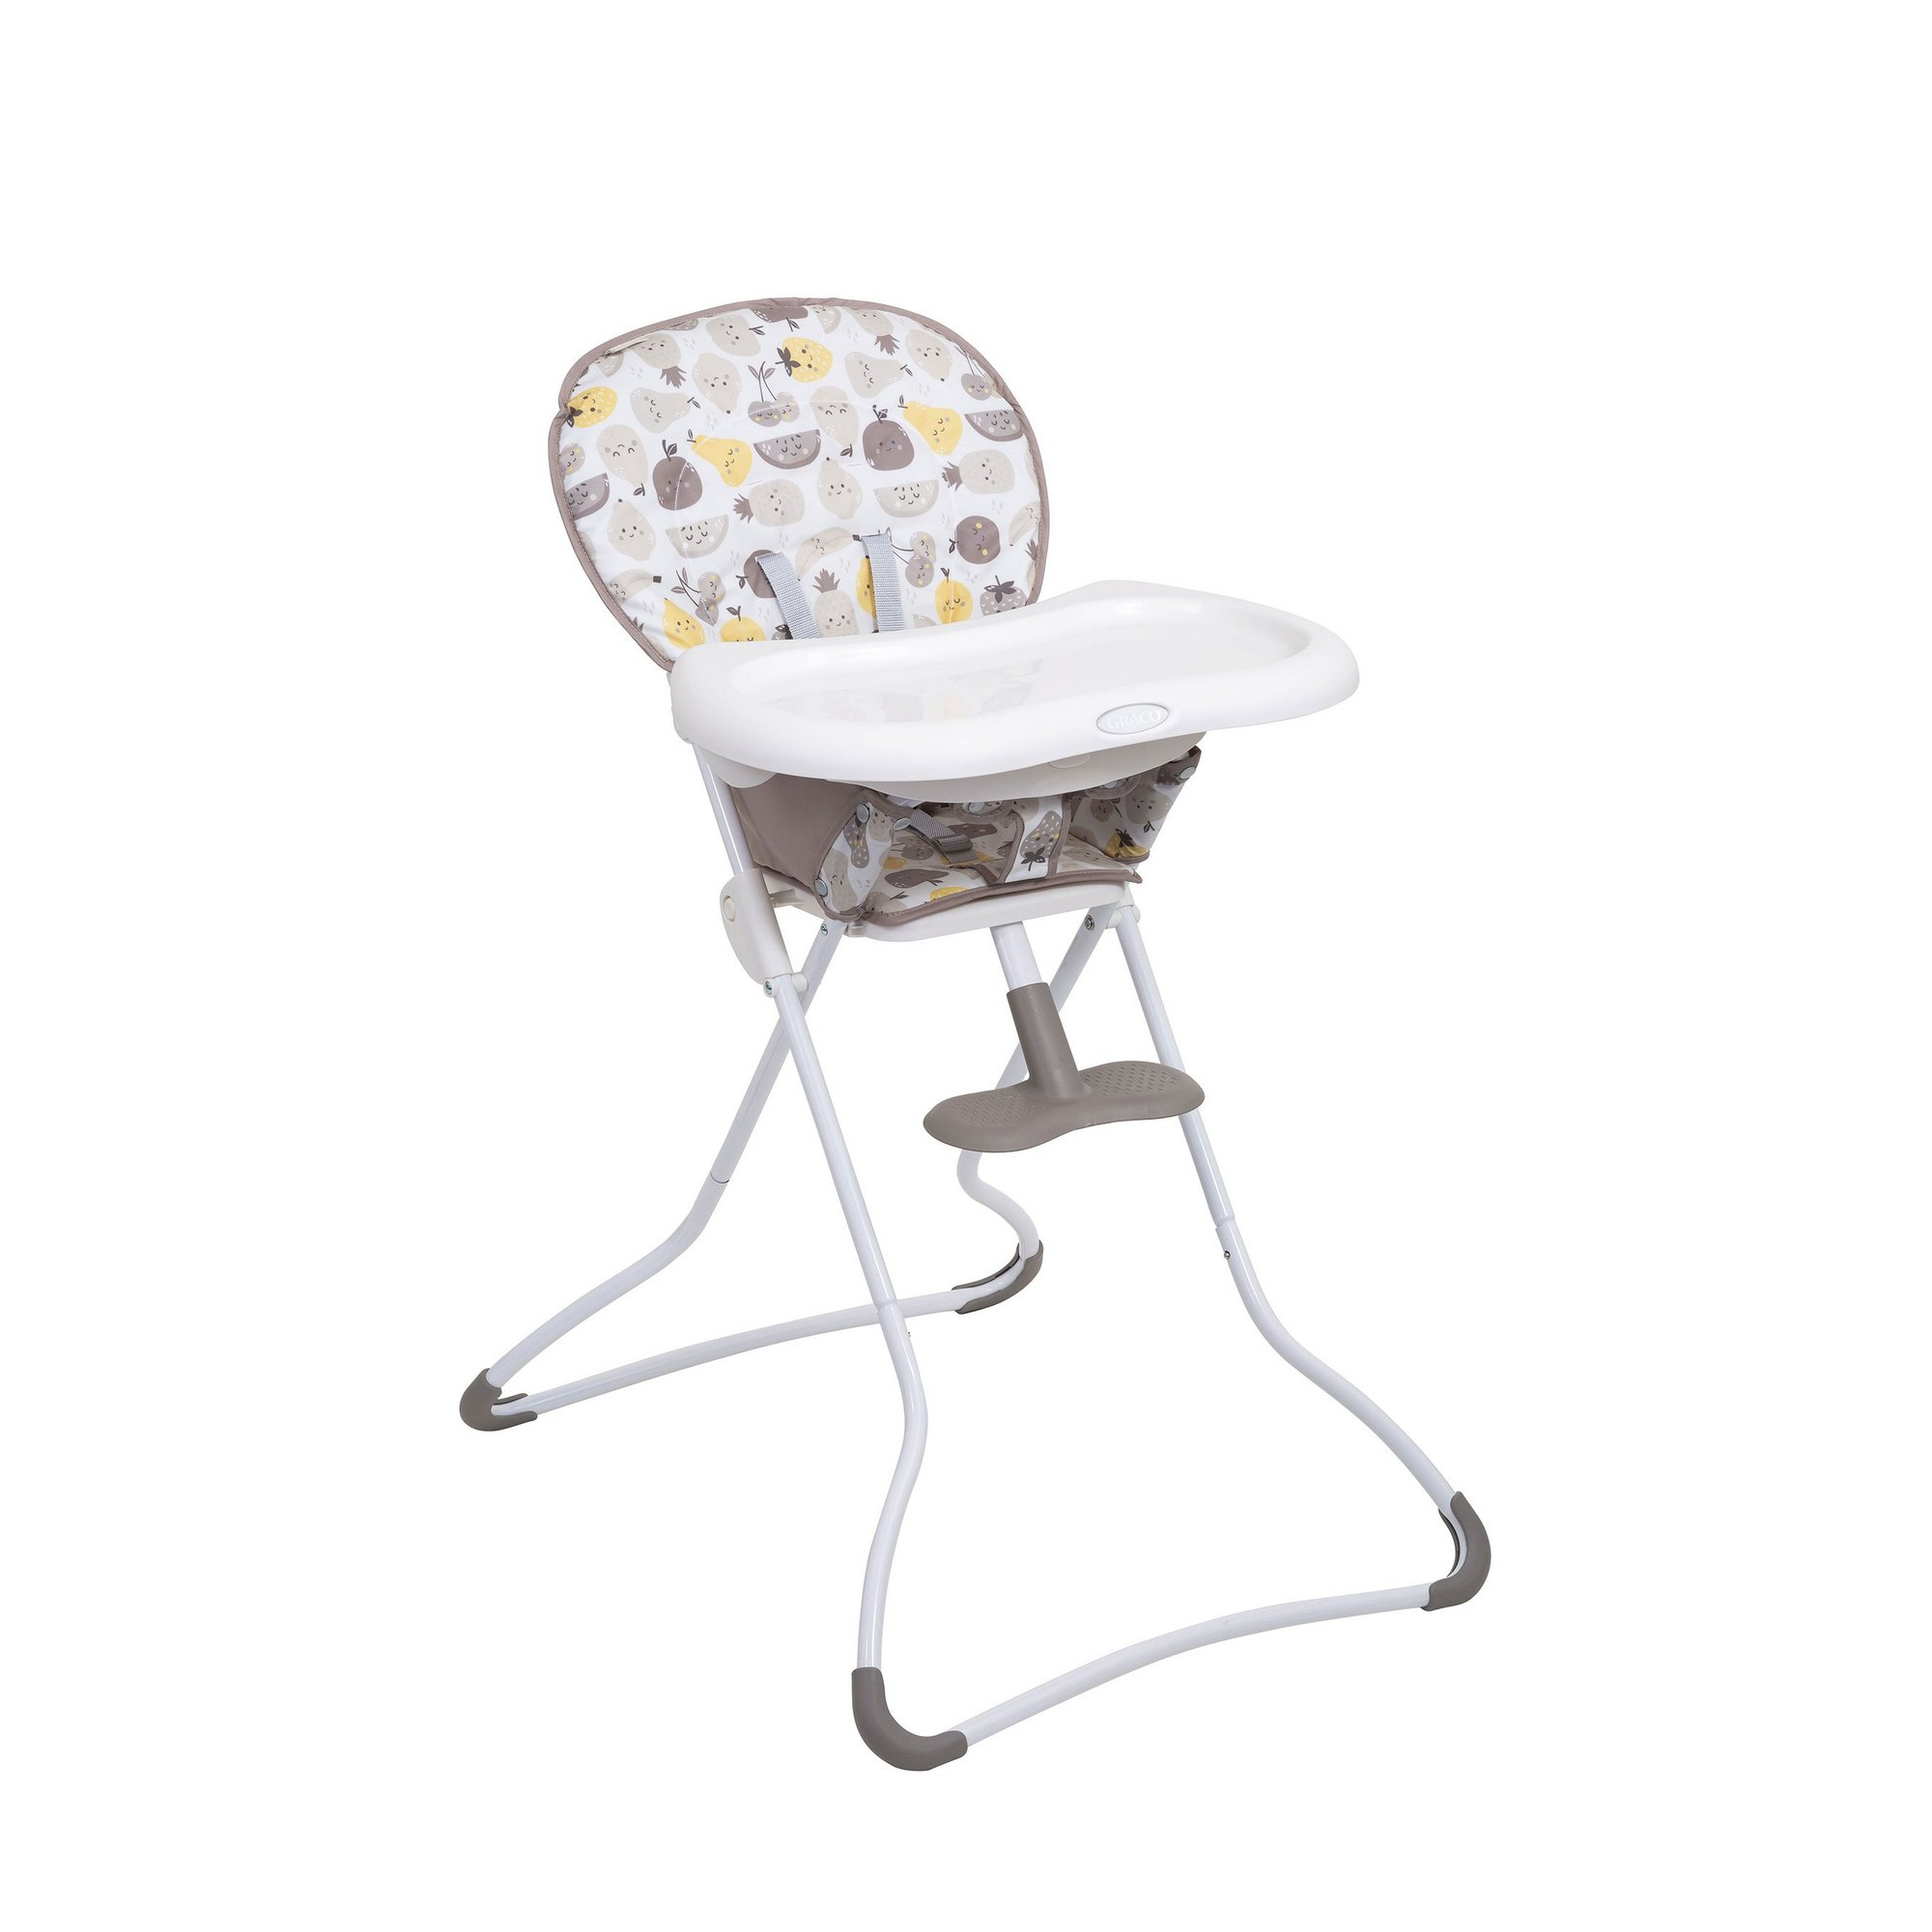 Image of Graco Fruitella Snack N Stow Highchair